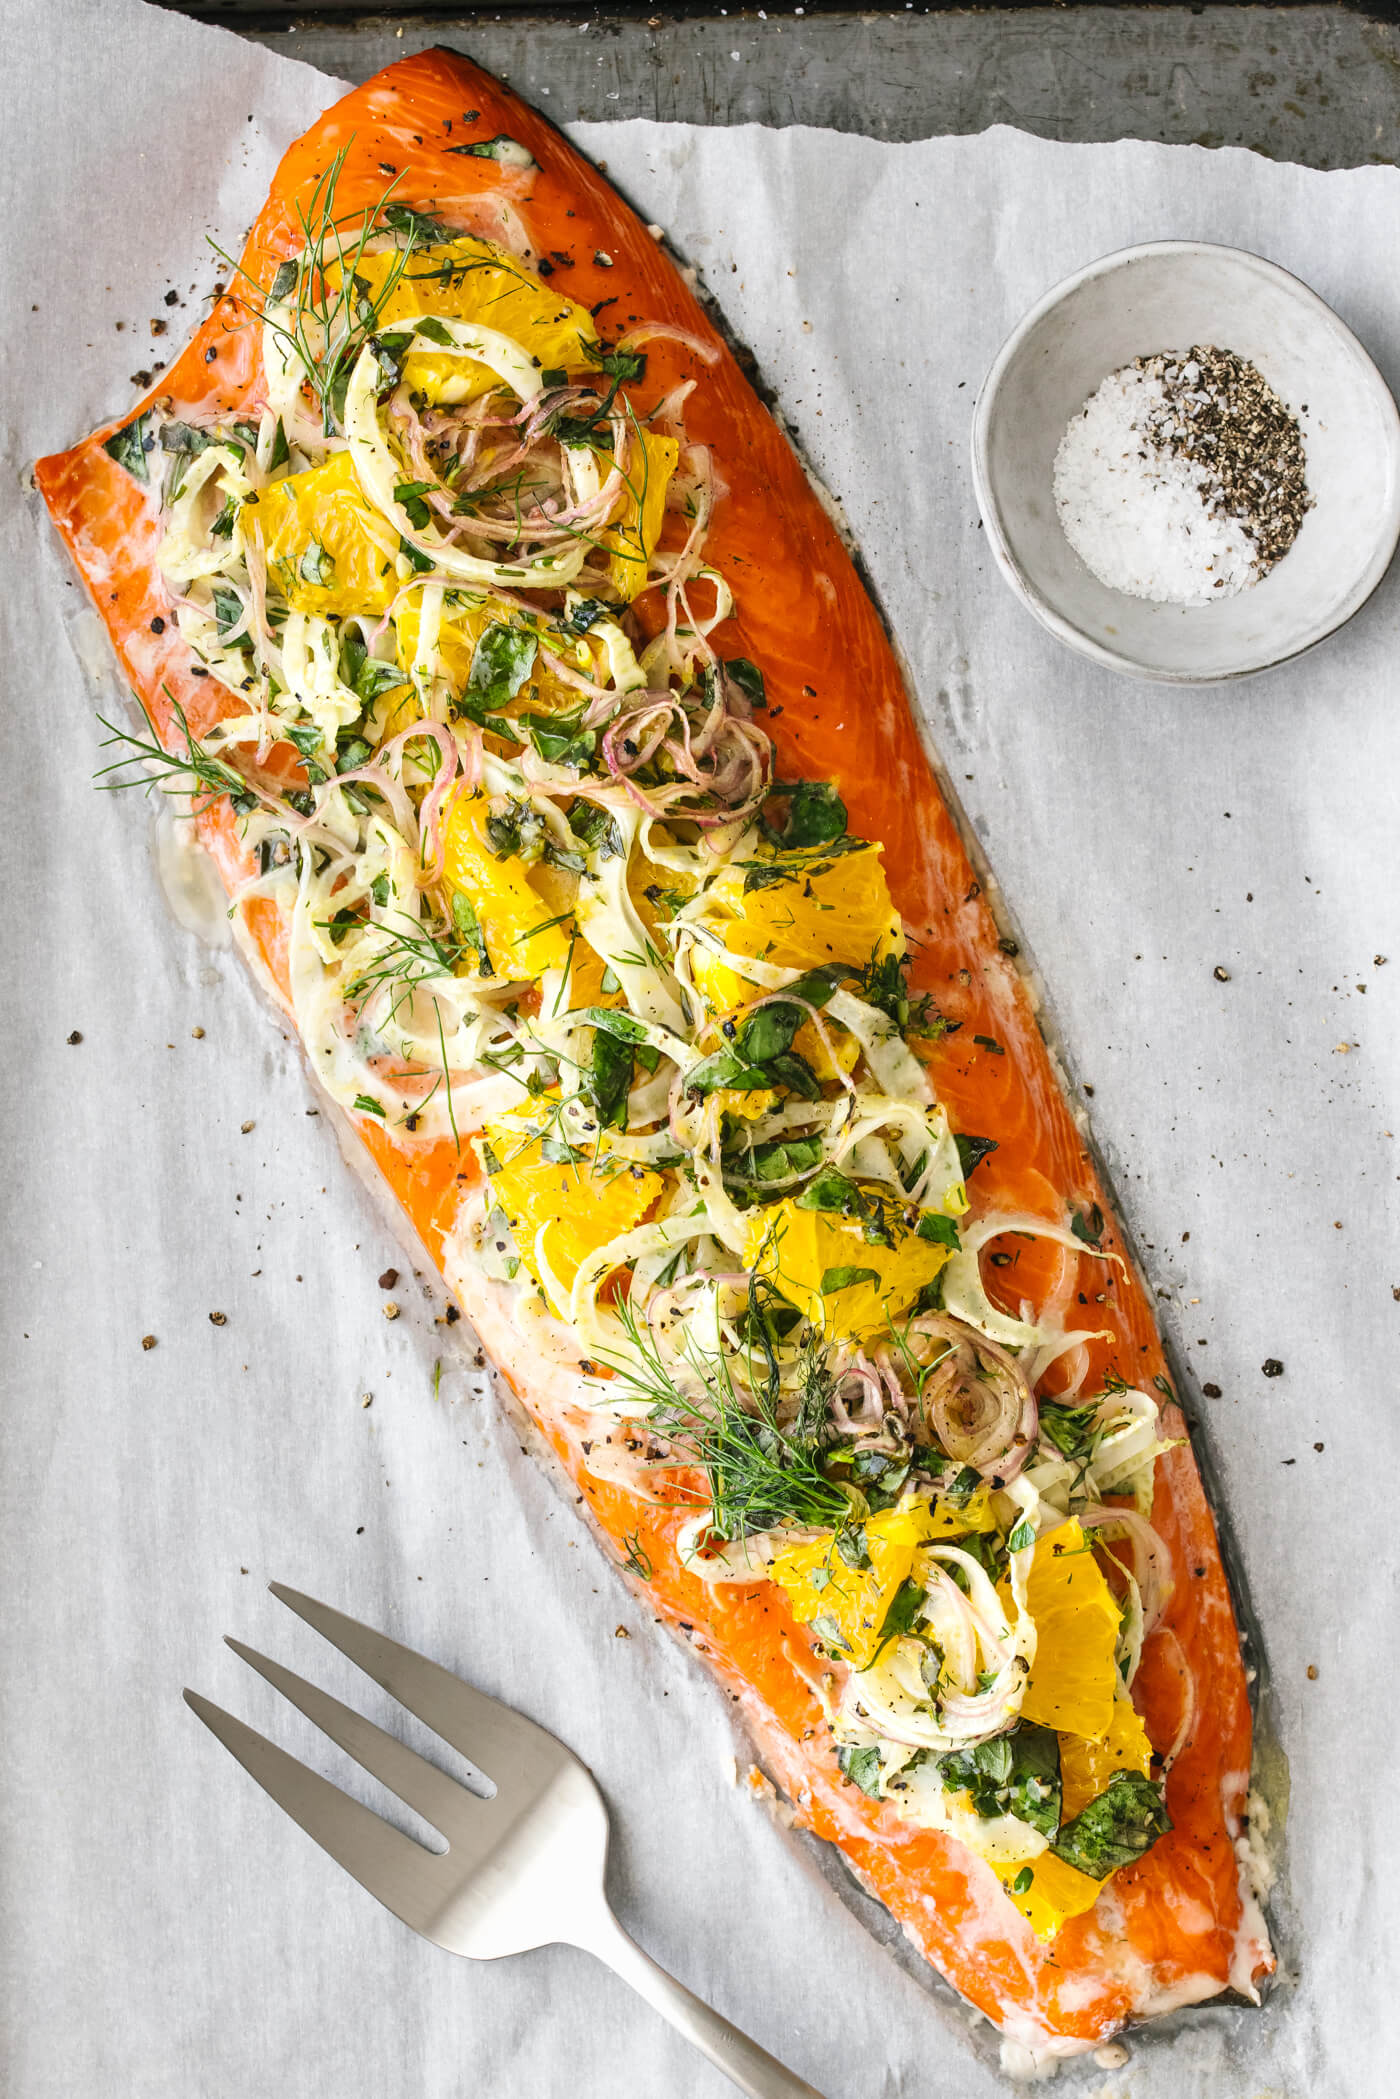 Slow roasted salmon with orange, fennel, and herbs on a sheet pan.